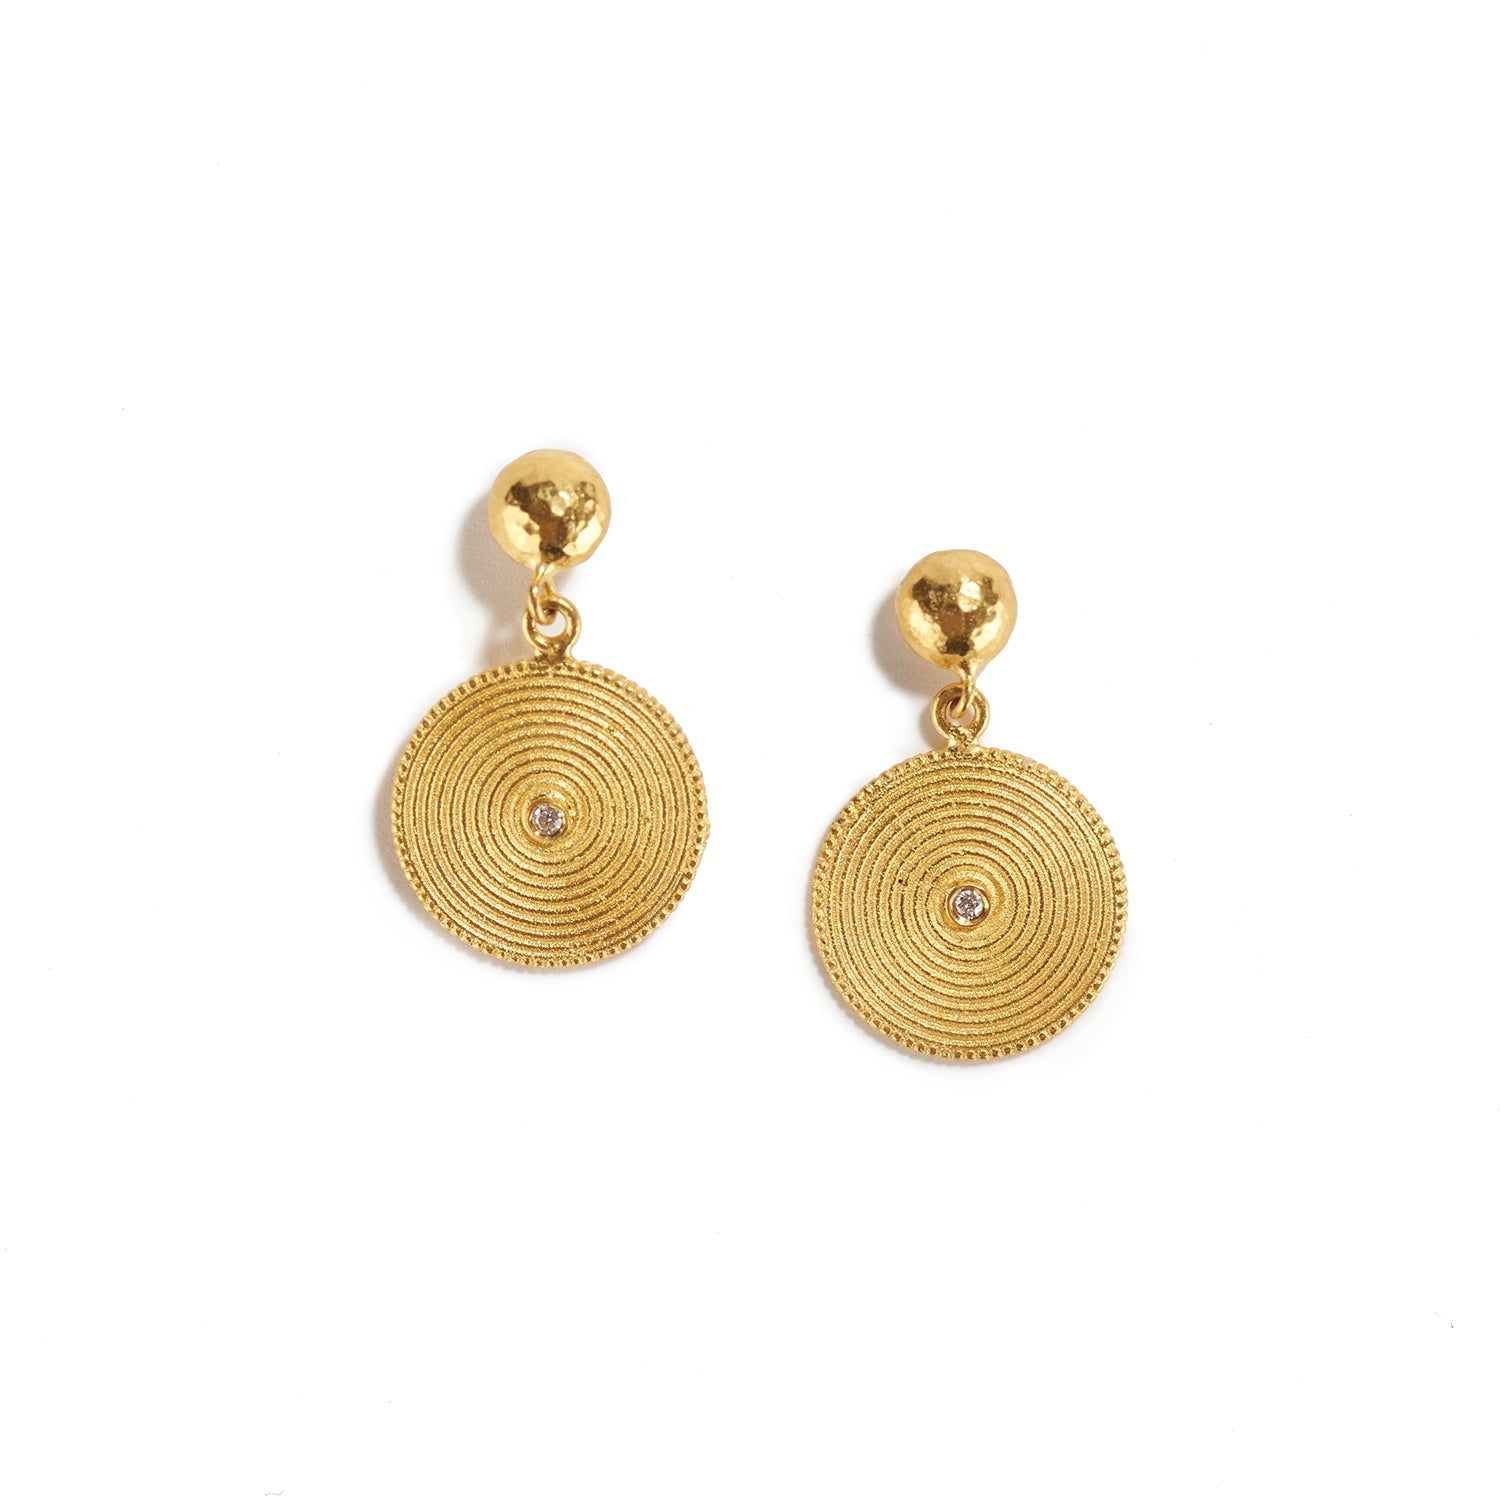 Textured Golden Disk Earrings